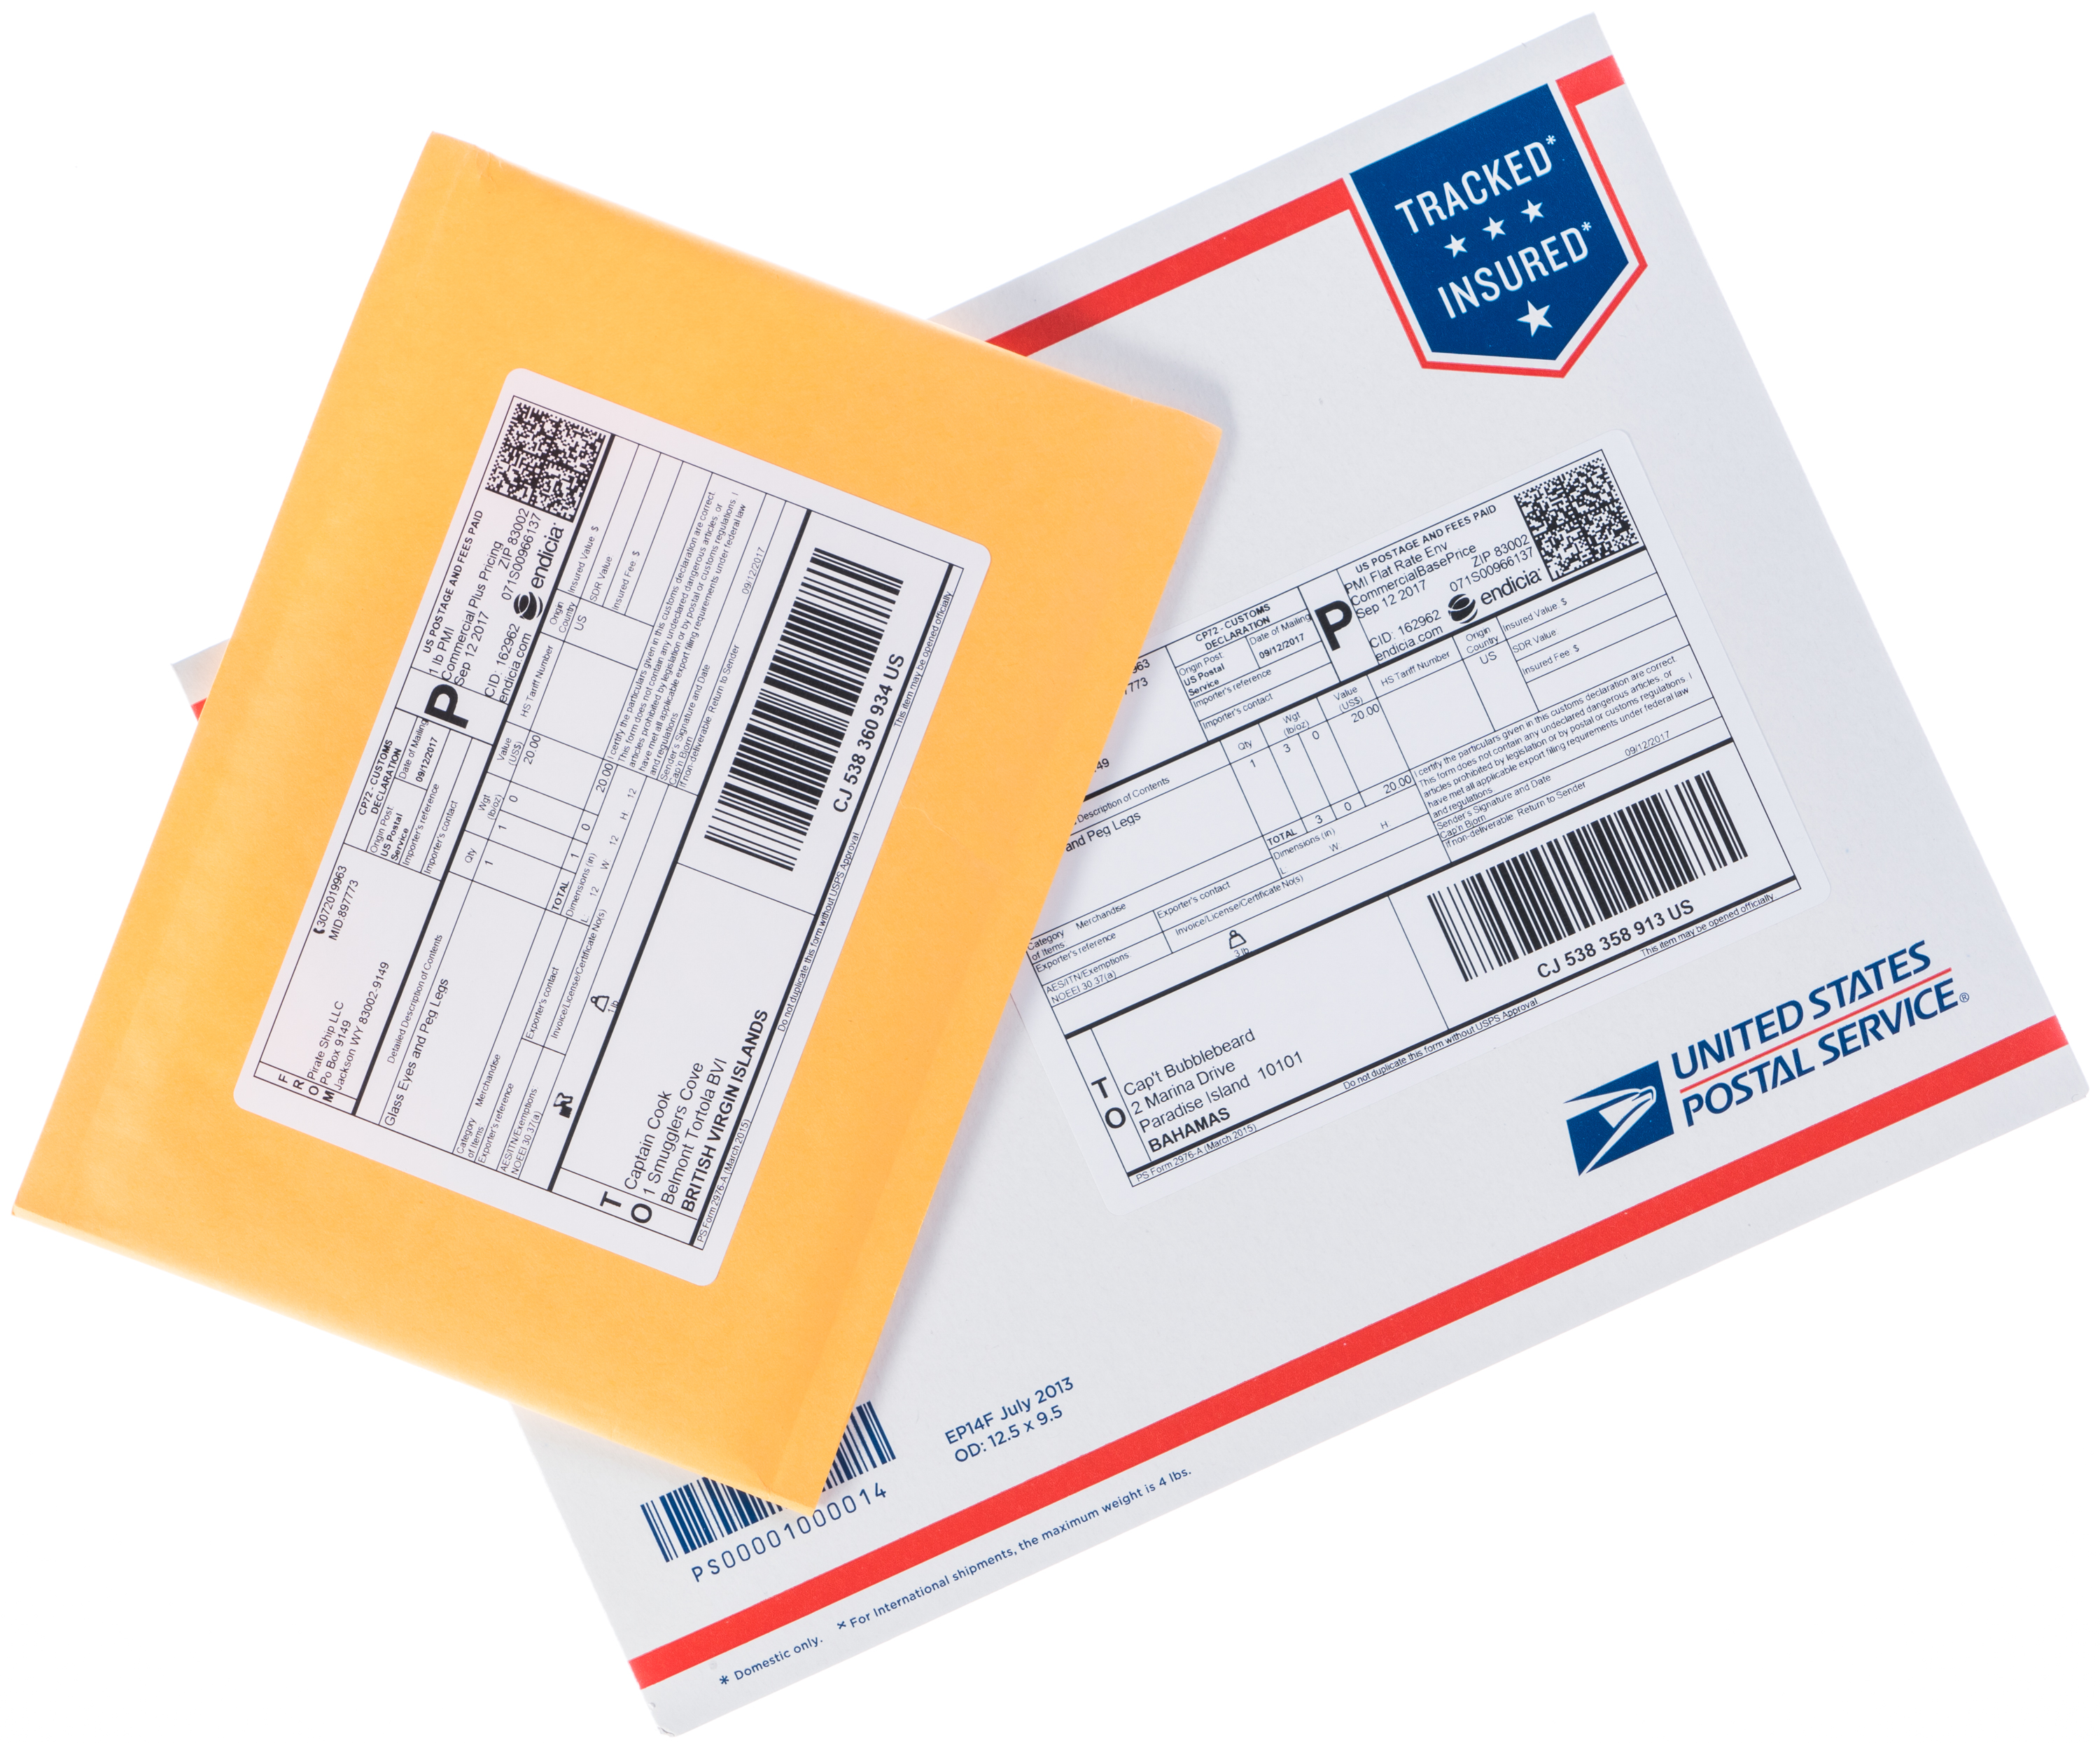 Priority Mail International Flat Rate Envelope and normal shipping envelope